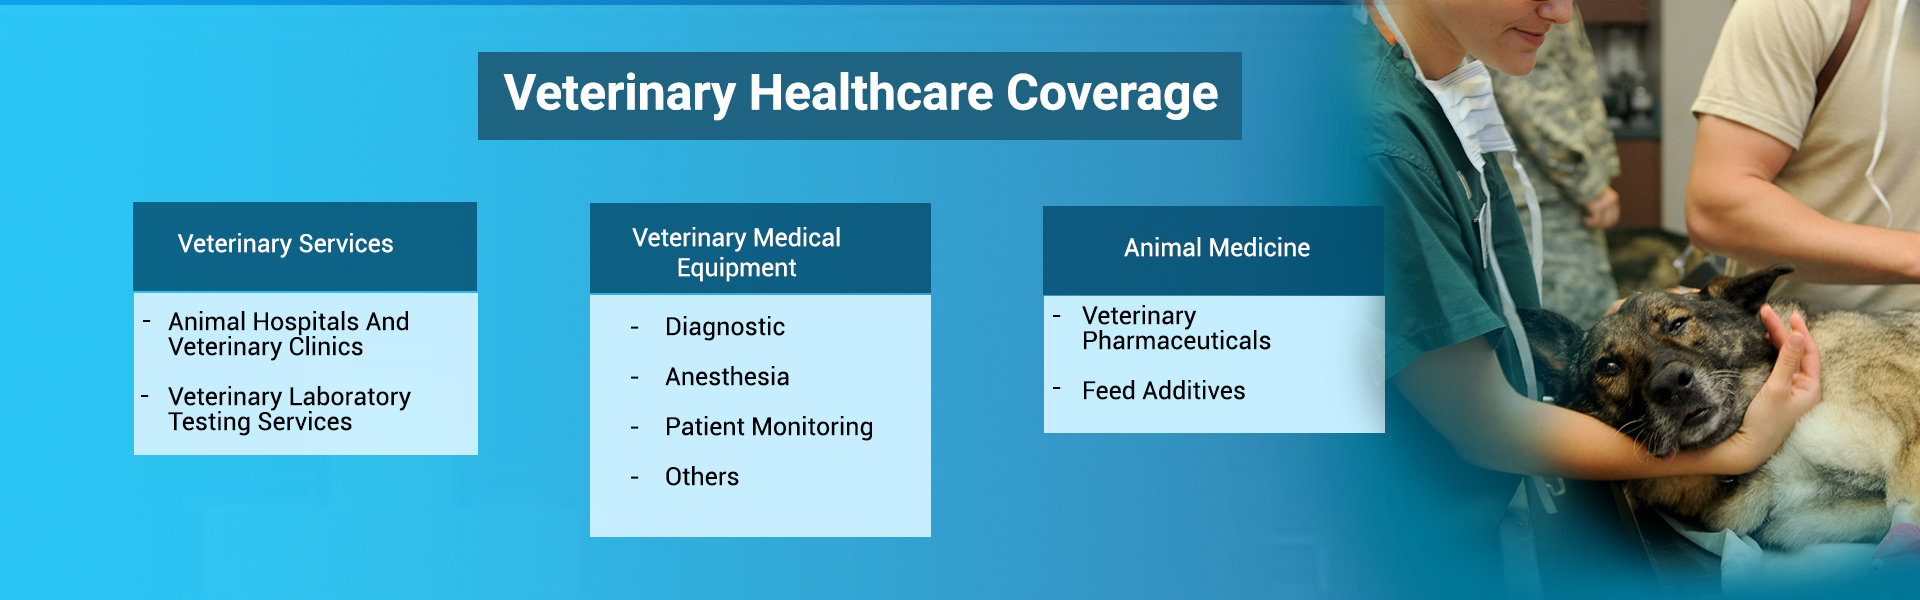 Veterinary Healthcare Coverage